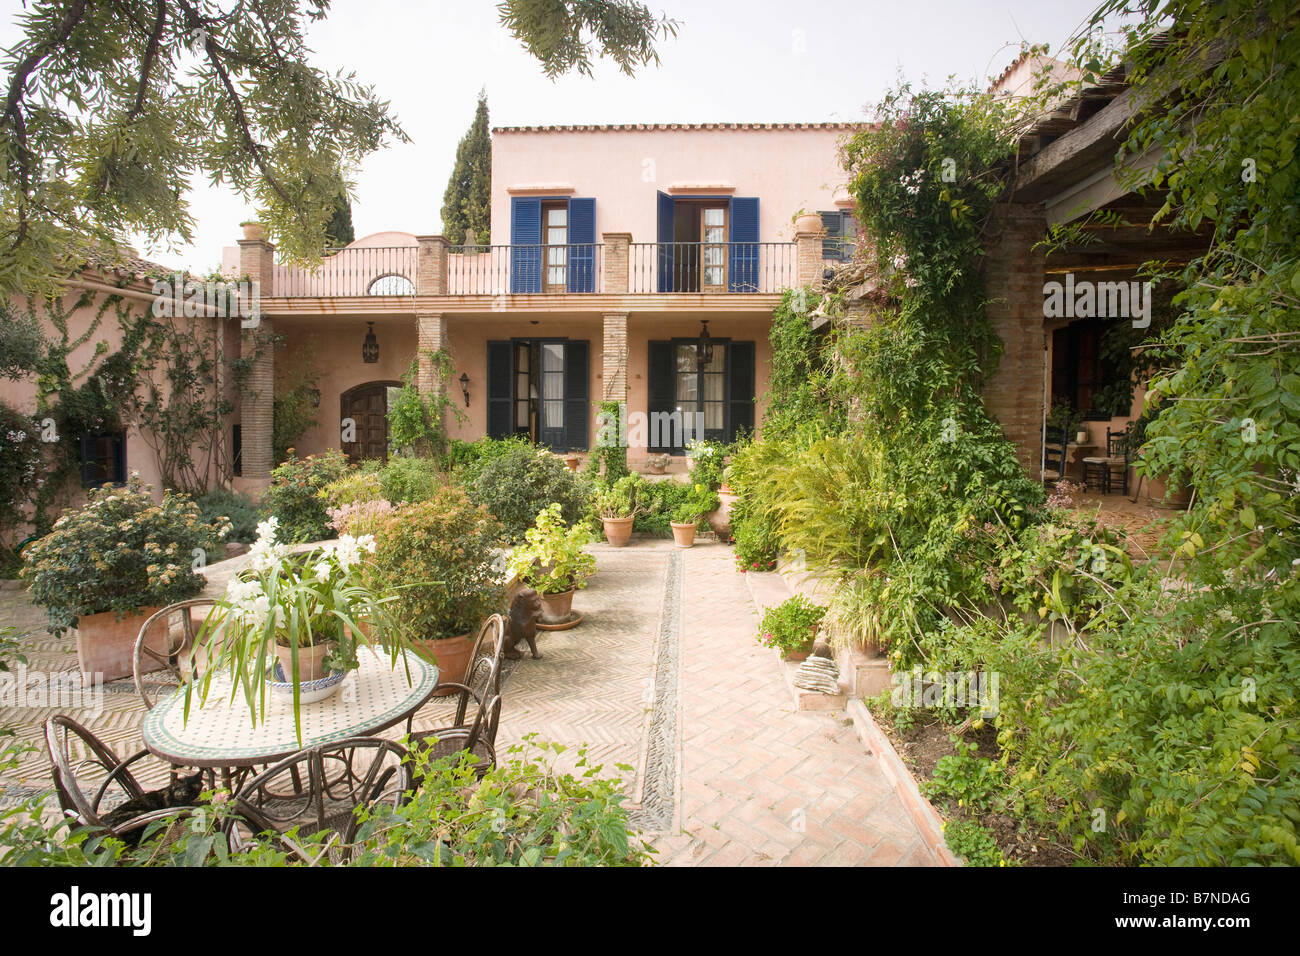 Stock Photo   Table And Chairs On Patio In Spanish Courtyard Garden With  Herringbone Brick Path To Villa With Blue Shutters And Balcony